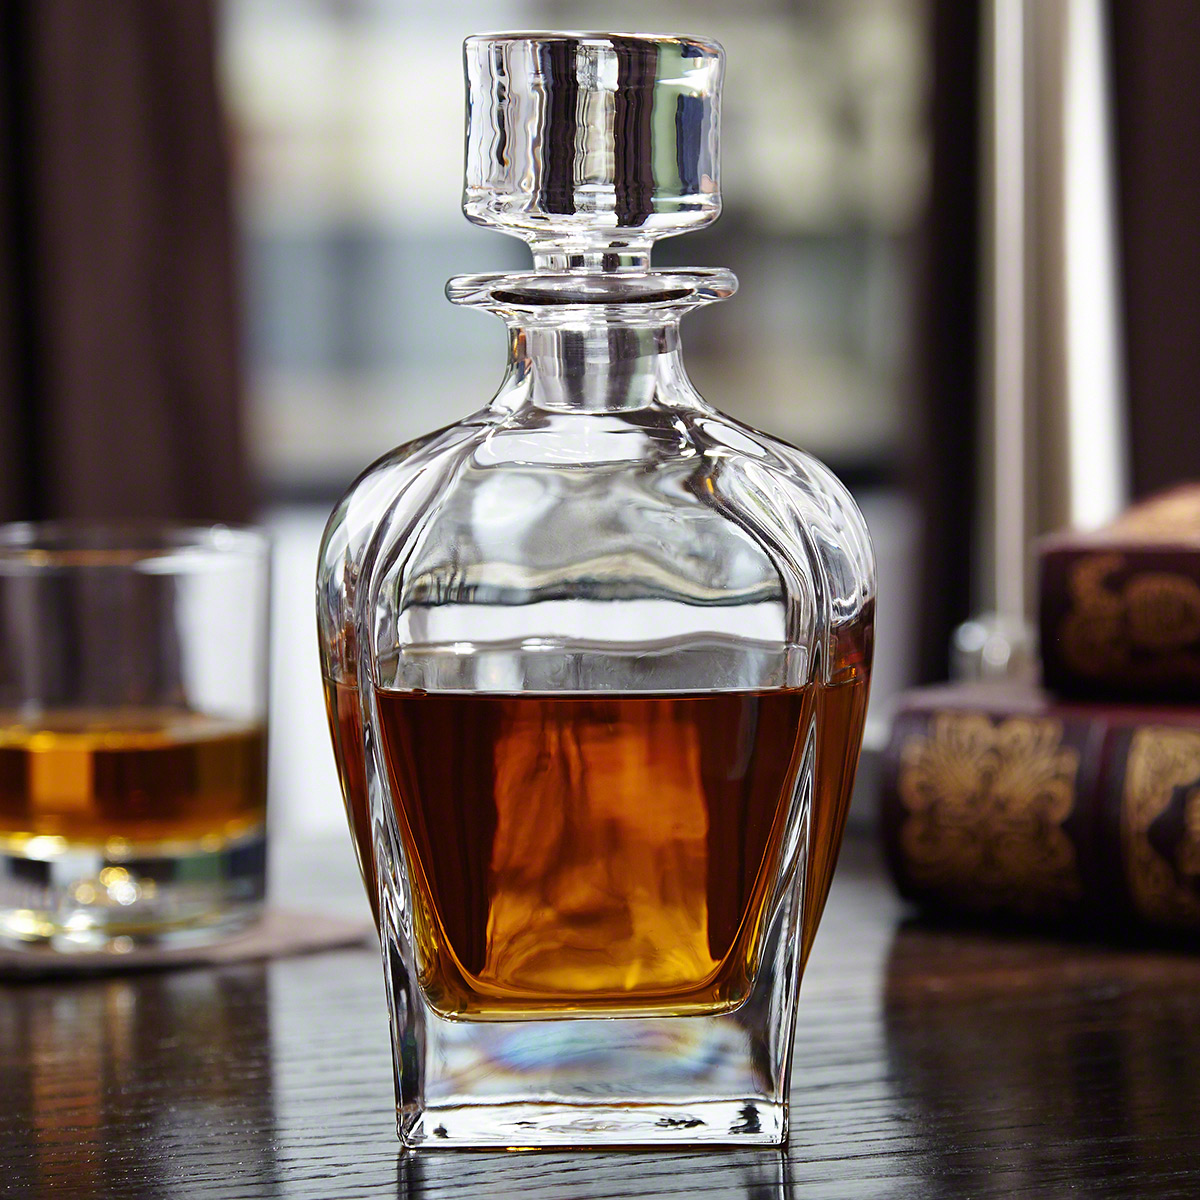 Premium Glass Decanter & Stopper Add-On